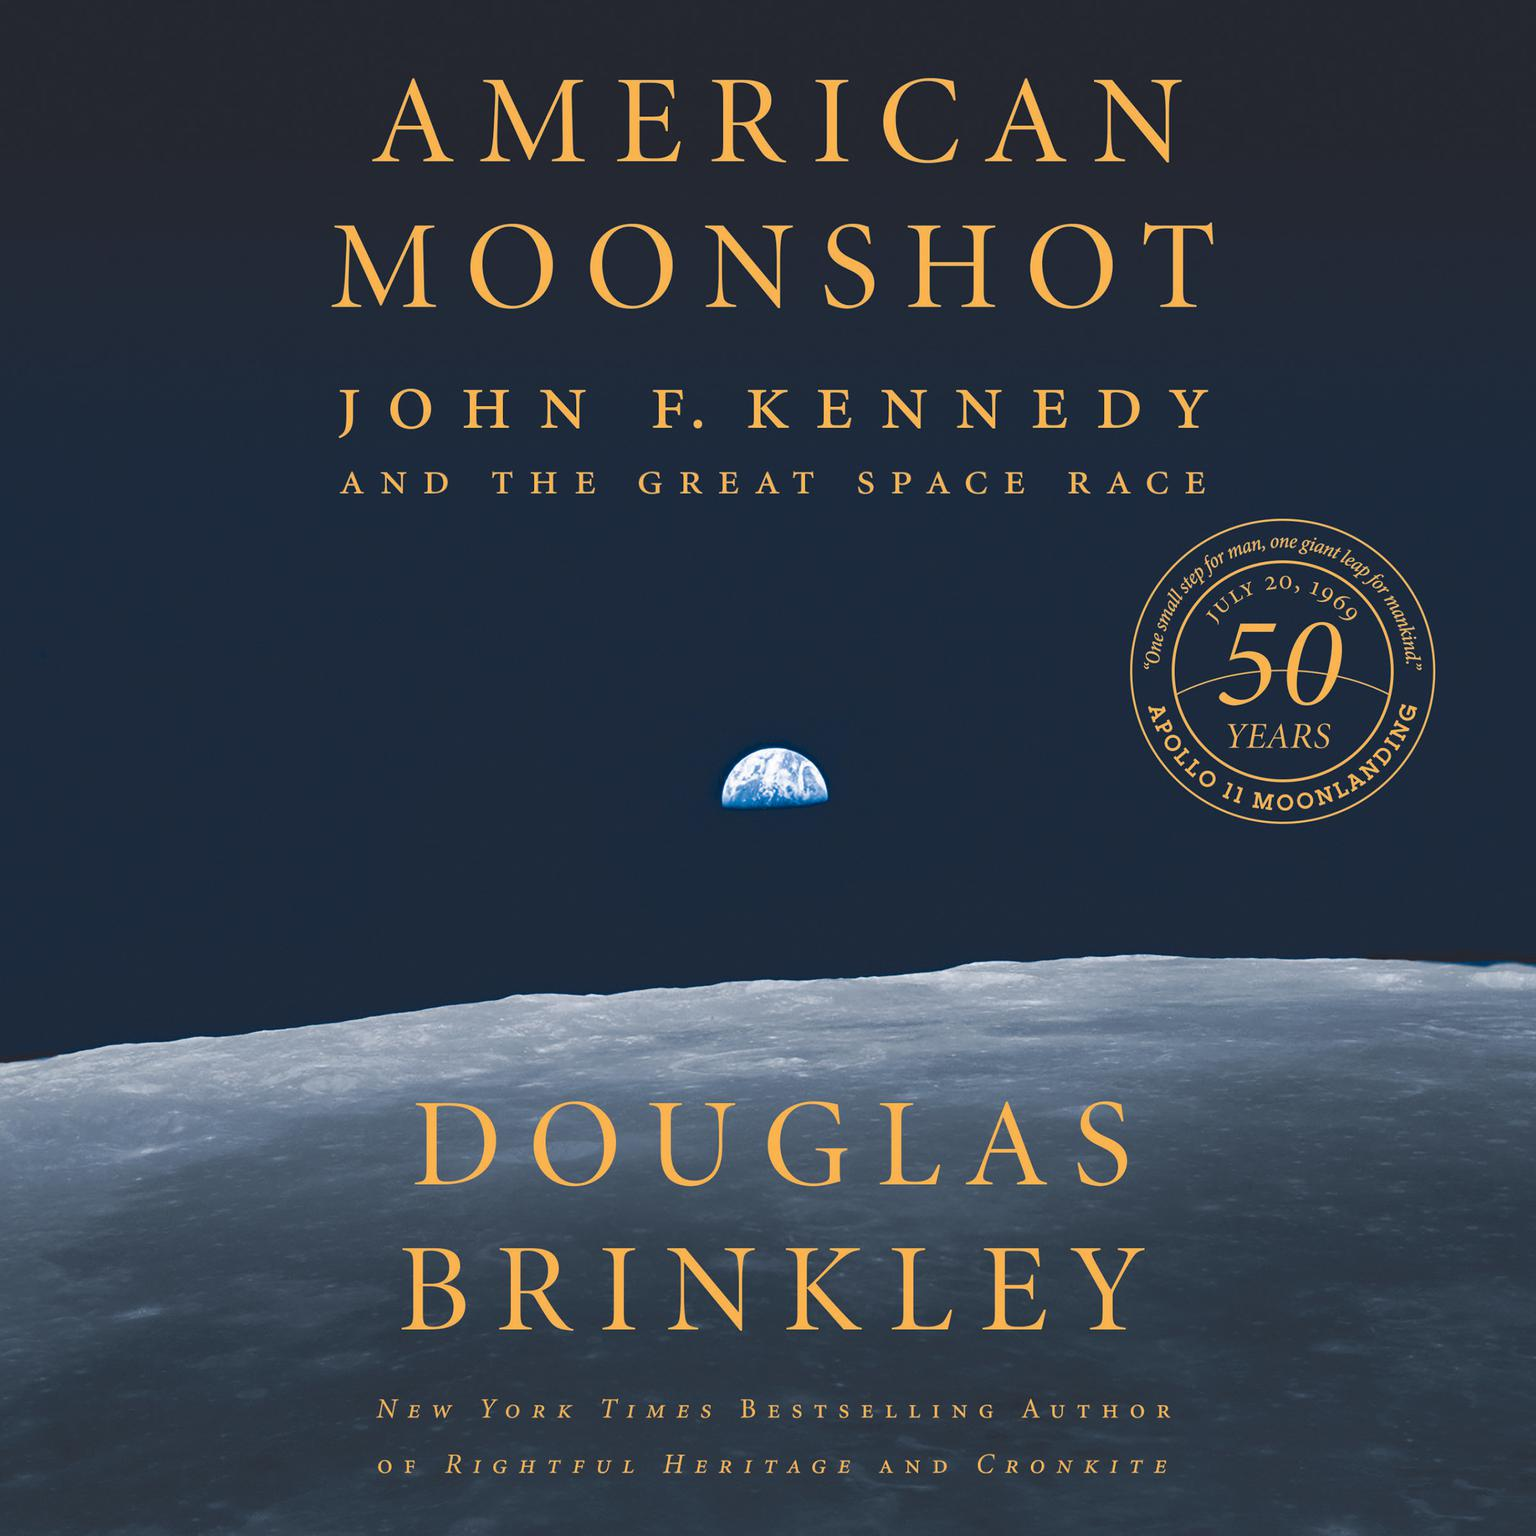 Printable American Moonshot: John F. Kennedy and the Great Space Race Audiobook Cover Art